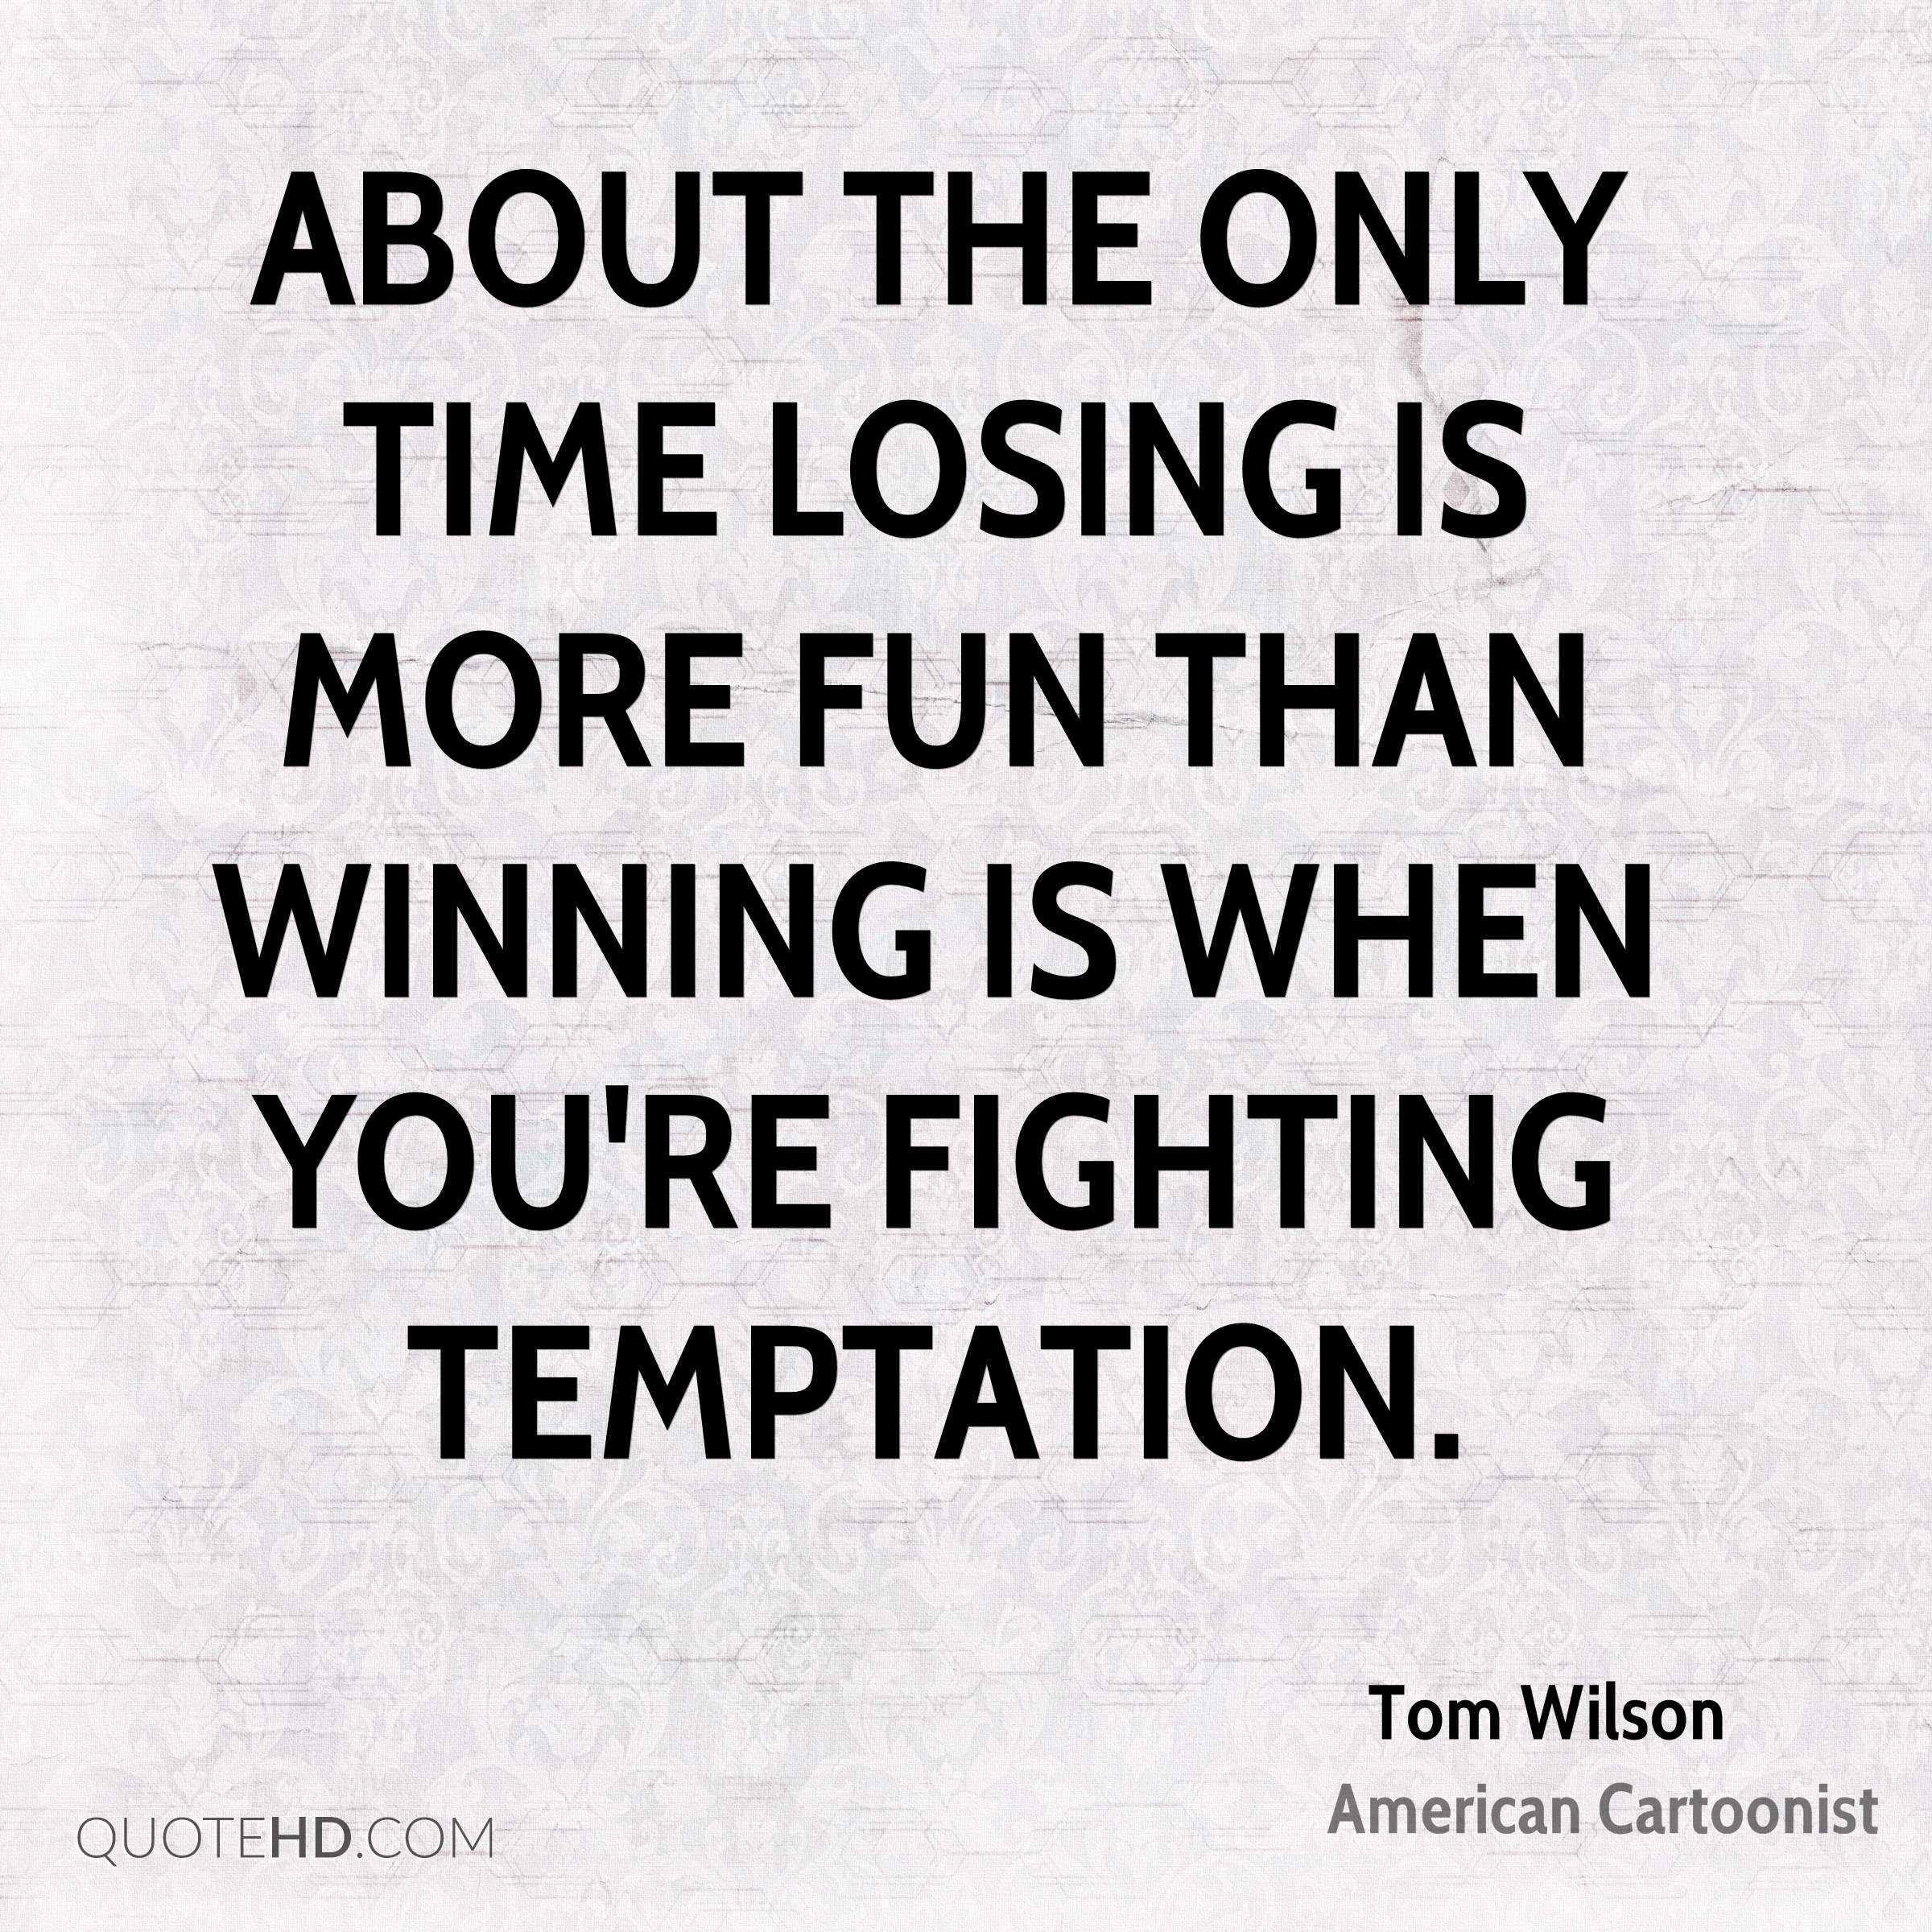 About the only time losing is more fun than winning is when you're fighting temptation.